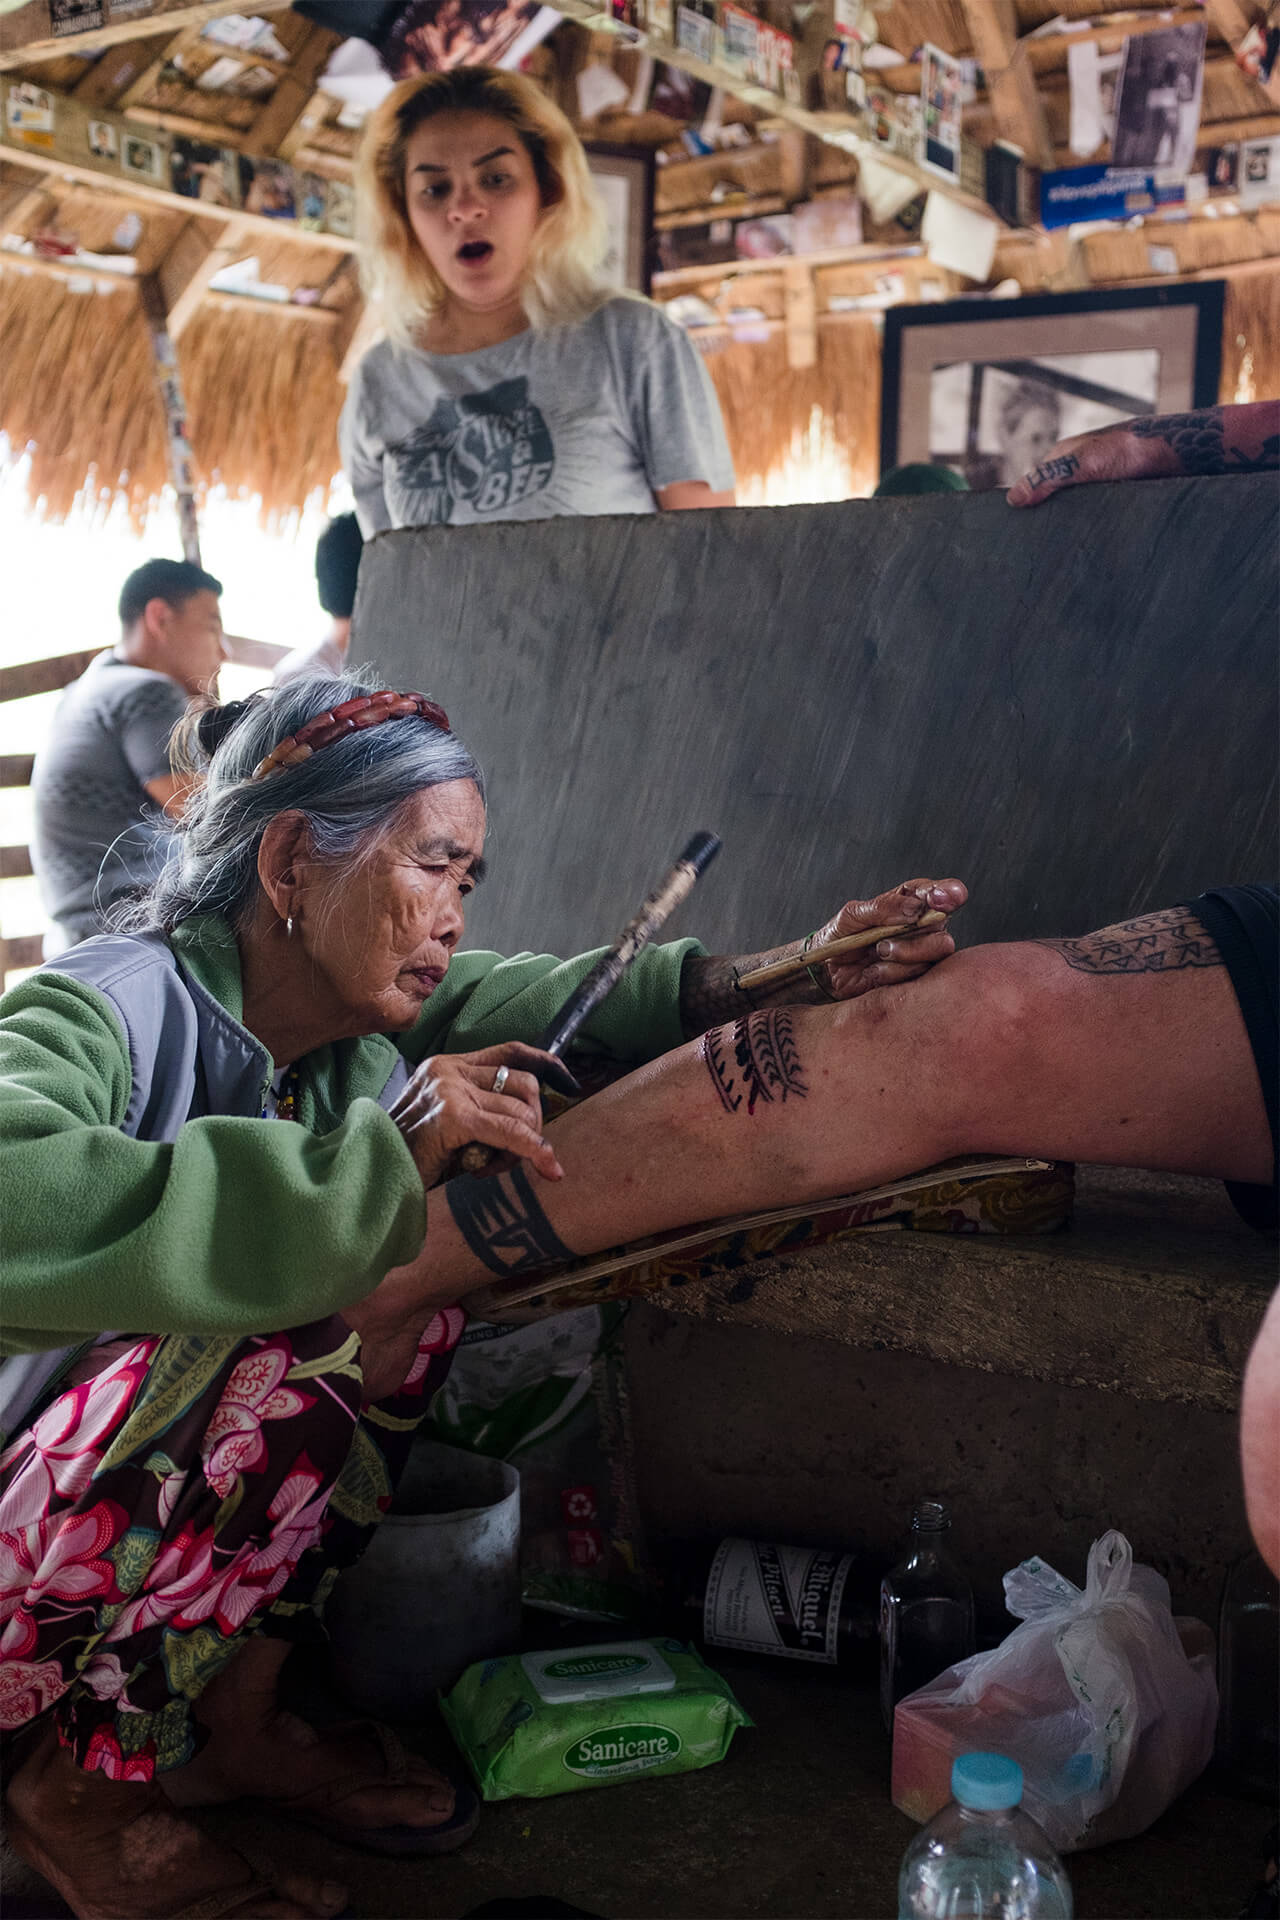 A woman looks with shock at Whang-od tattooing someone's leg